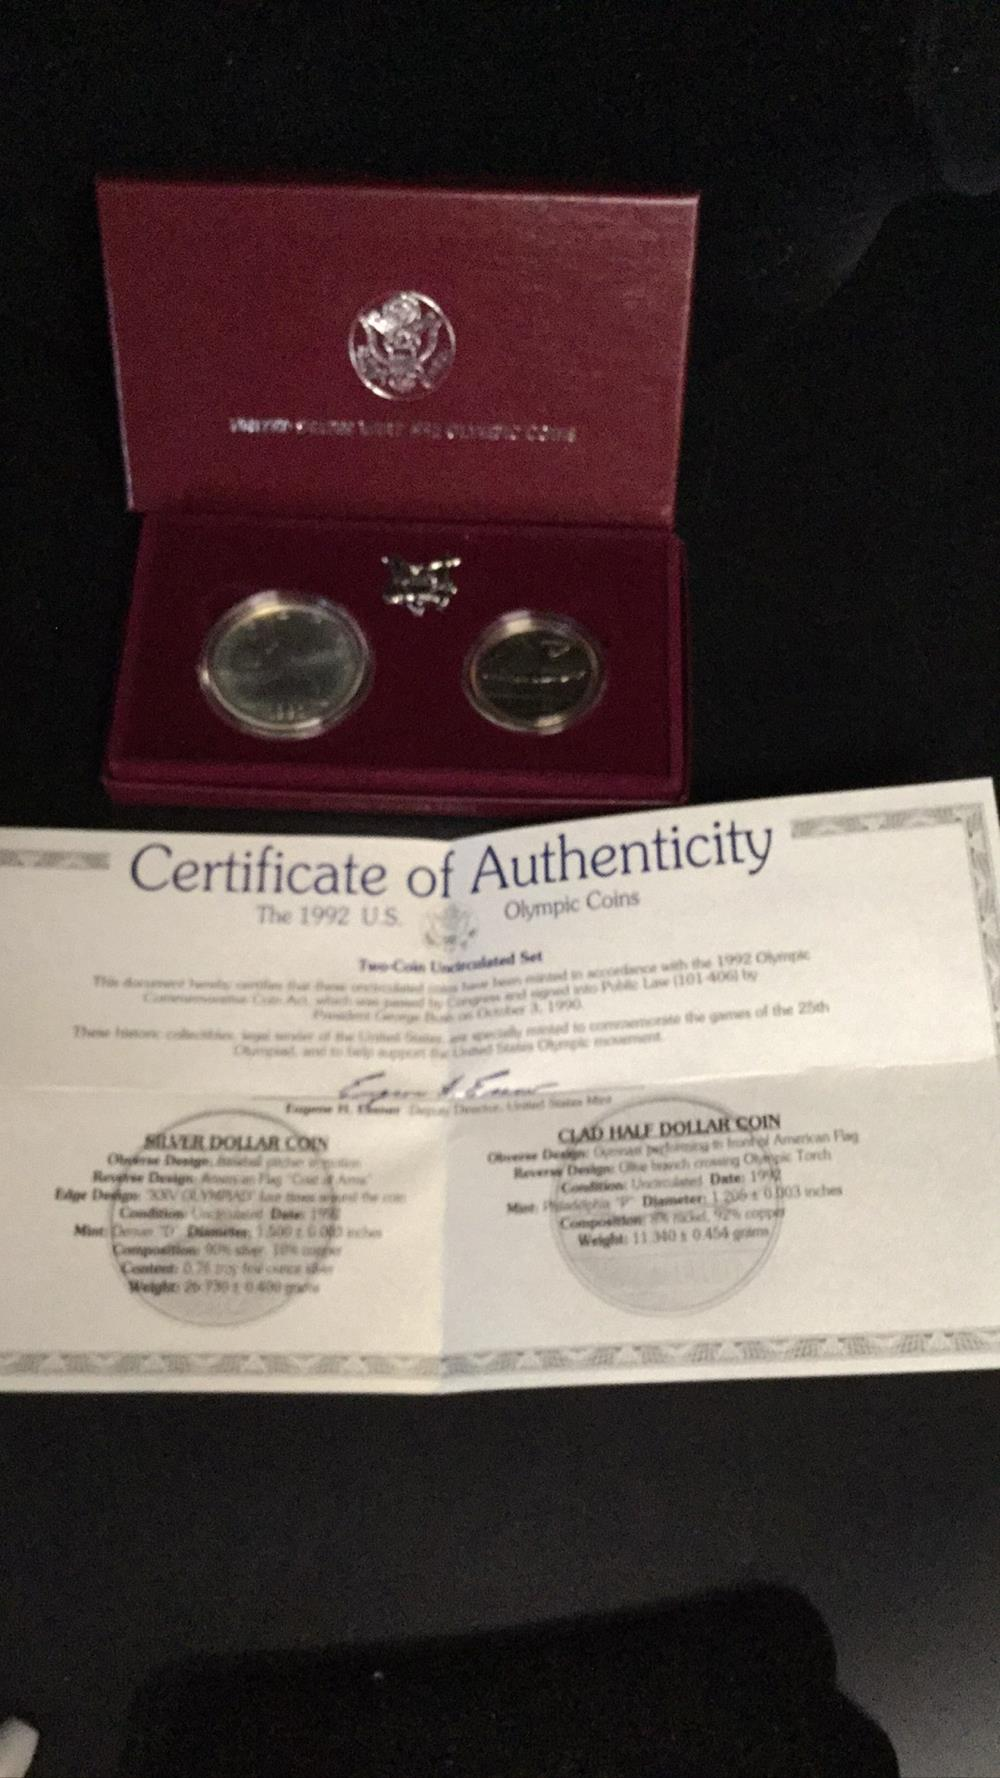 Lot 65: The 1992 us olympic coins